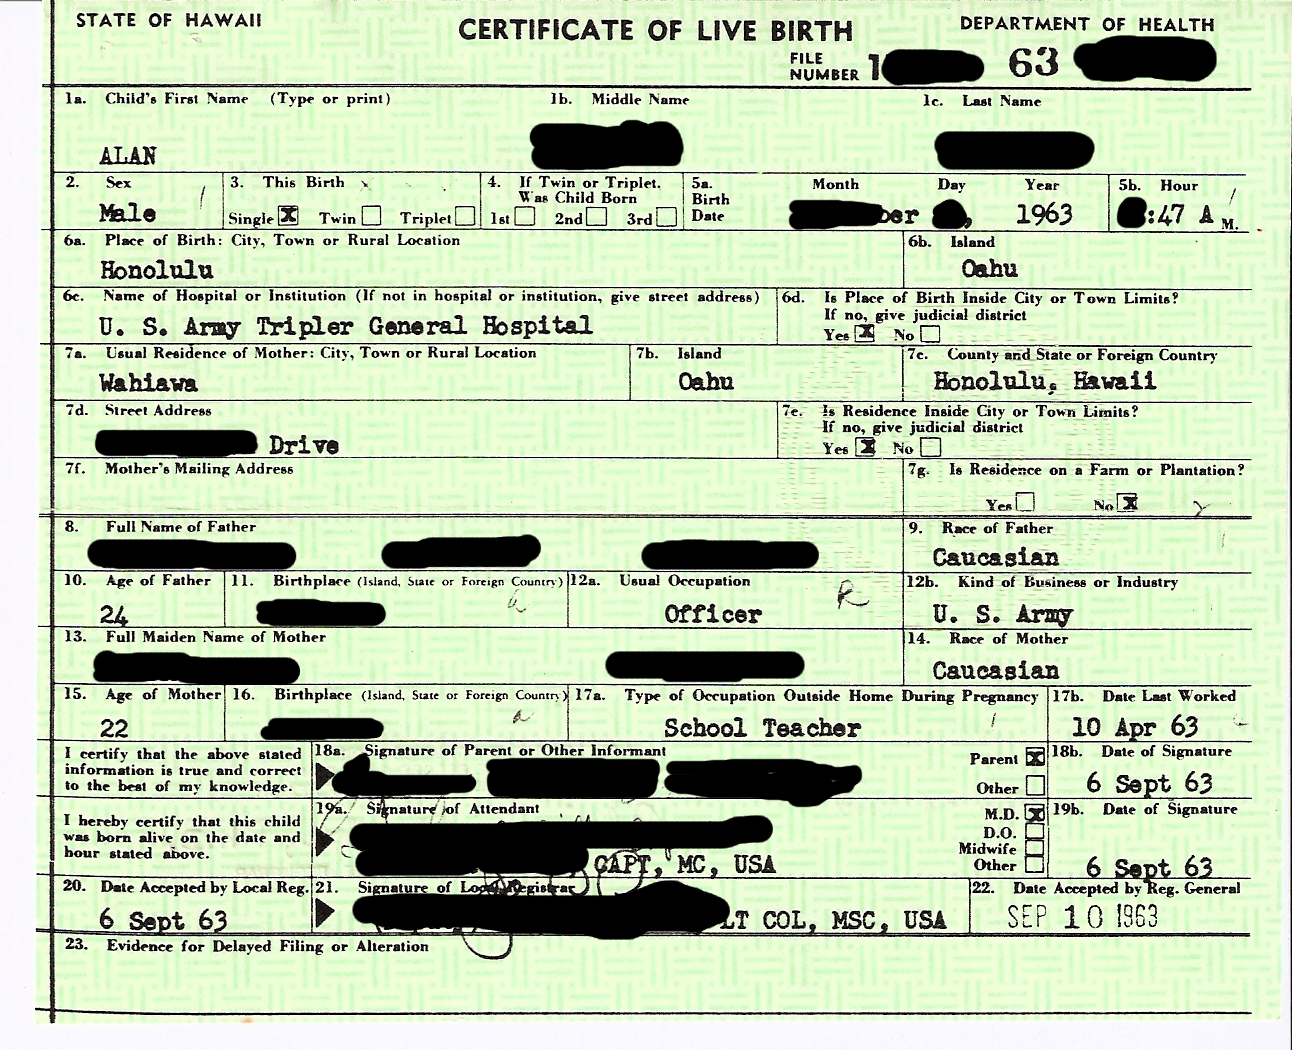 Hawaii birth certificate 1963 snarkybytes hawaii birth certificate 1963 xflitez Choice Image